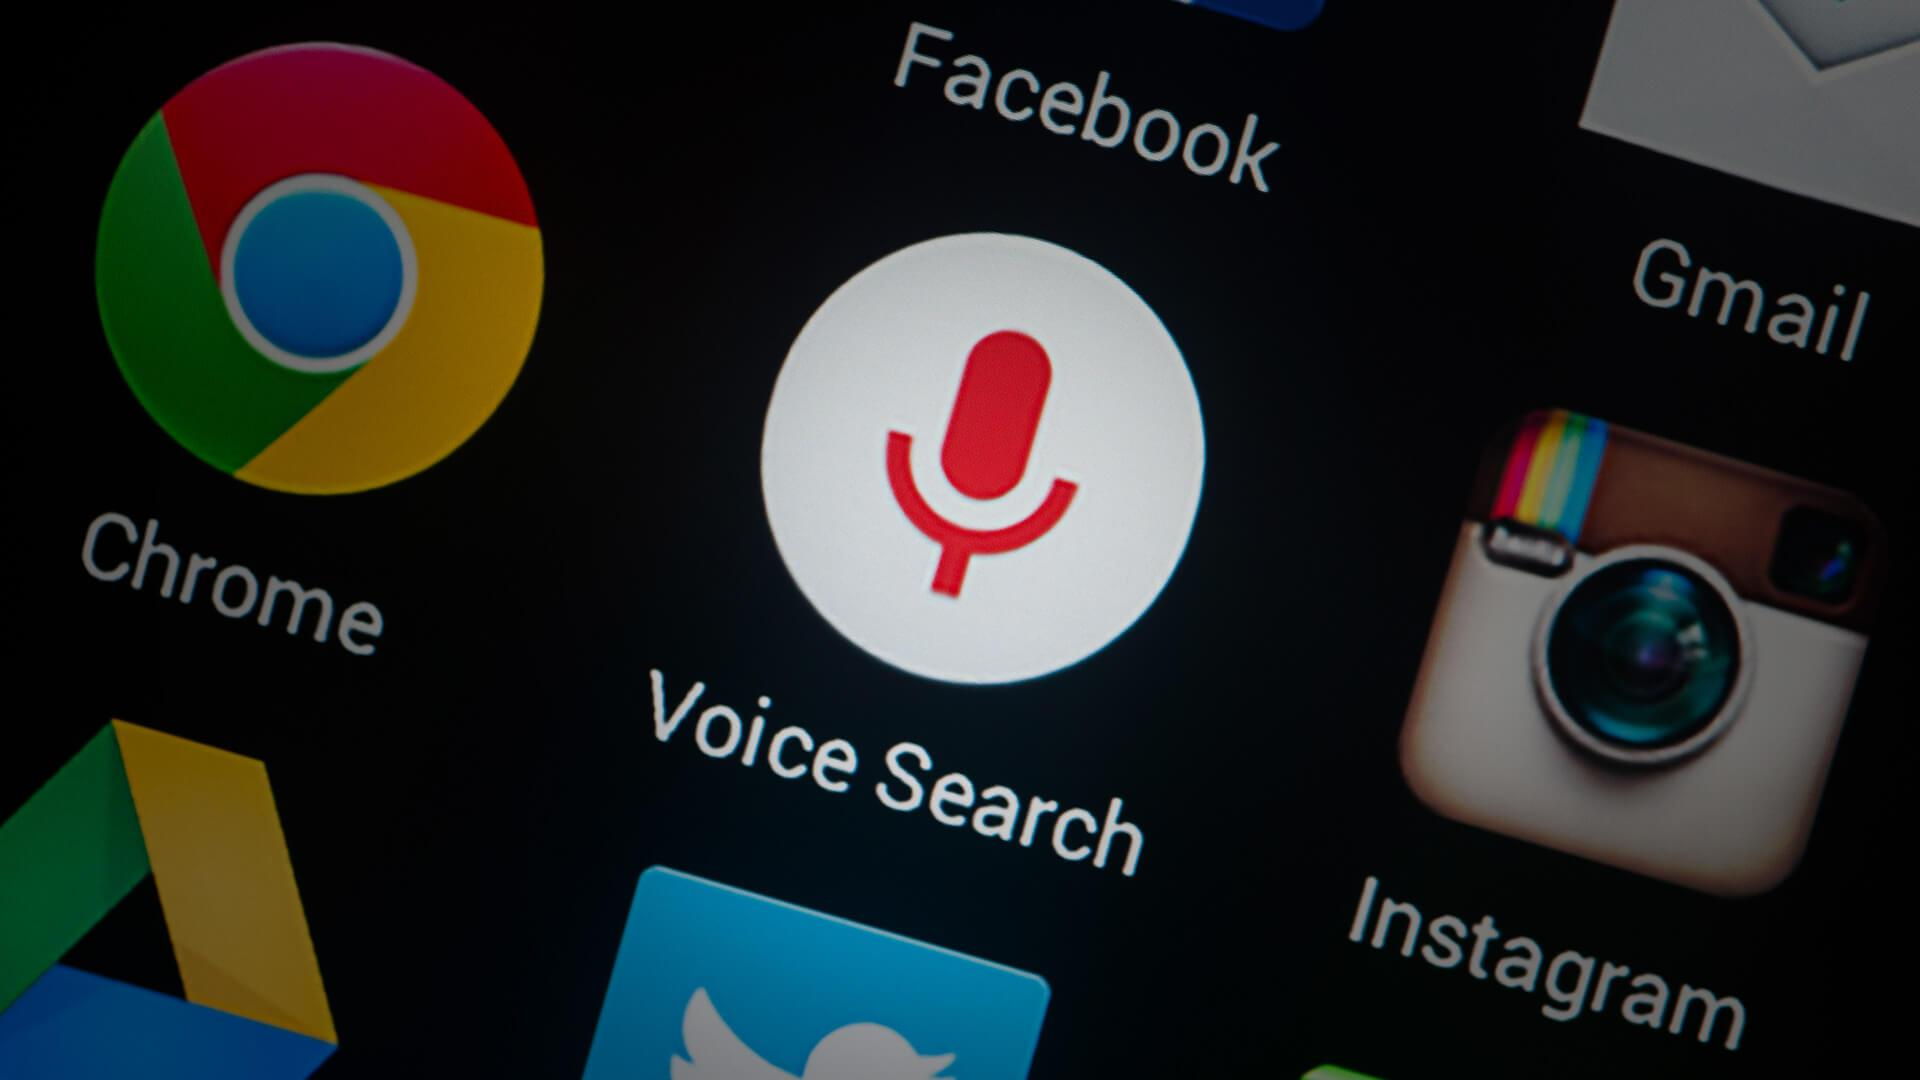 Voice Search: Preparing For The Biggest Shift In Search